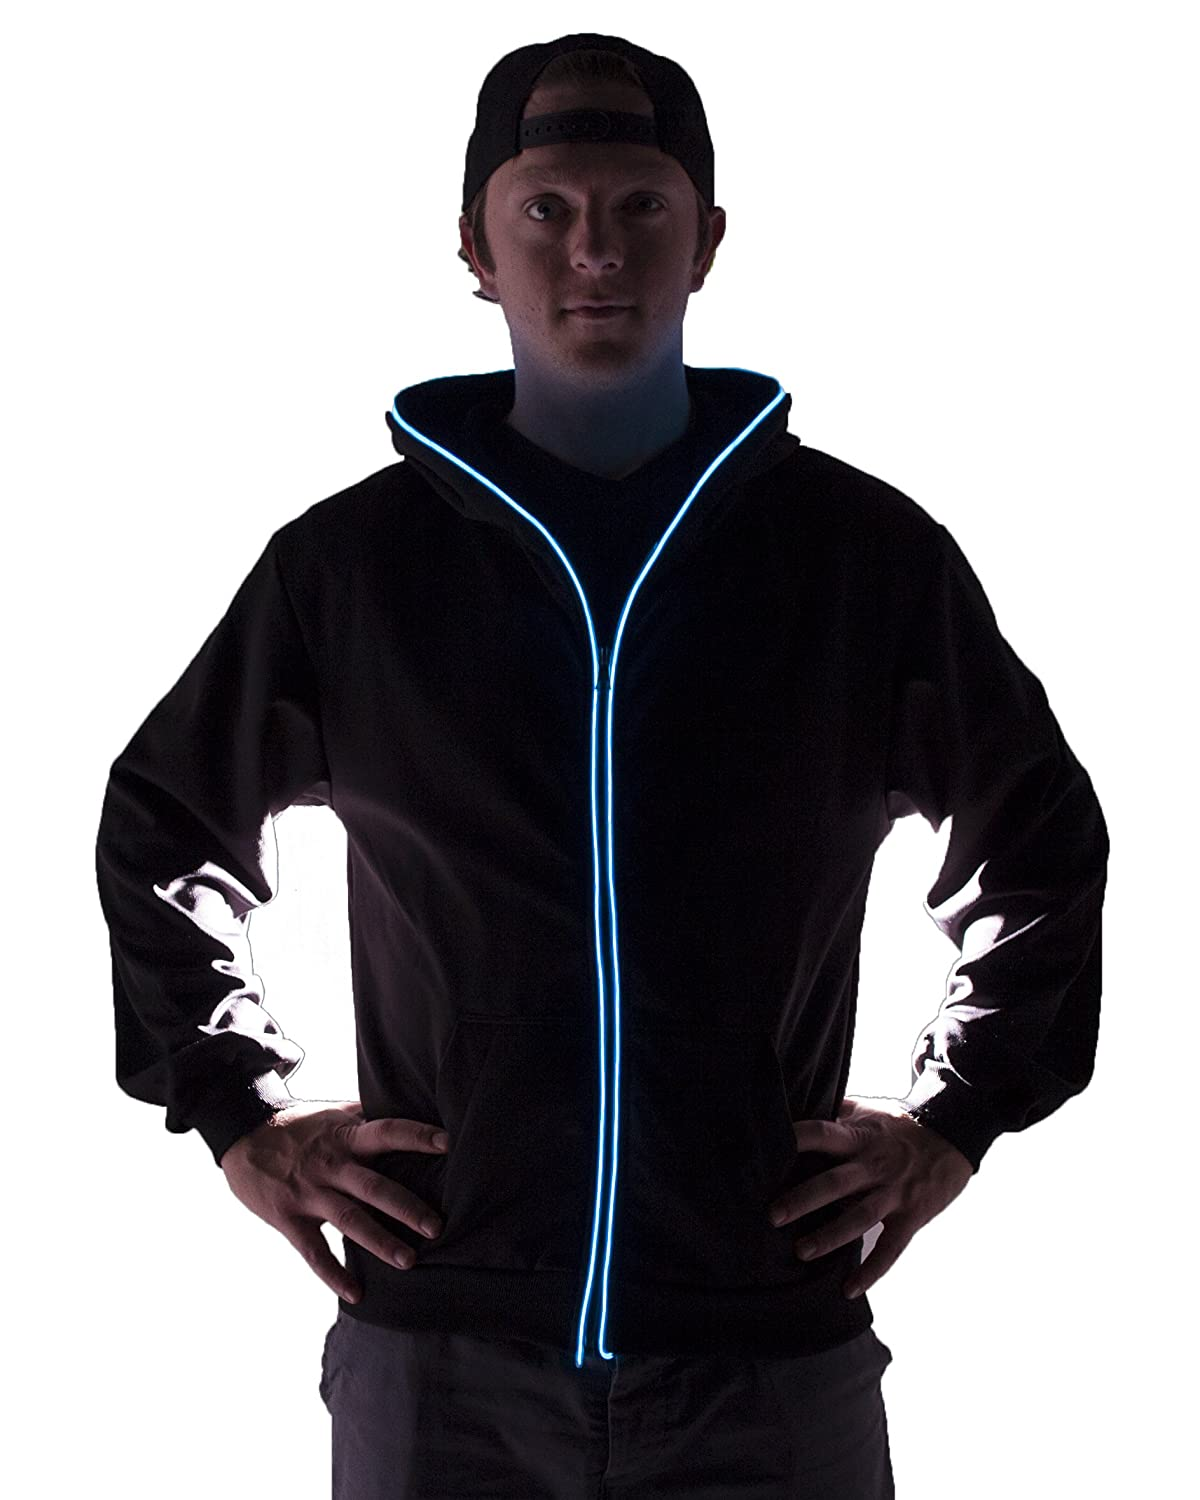 Amazon.com: Light up Hoodies by Electric Styles: Clothing